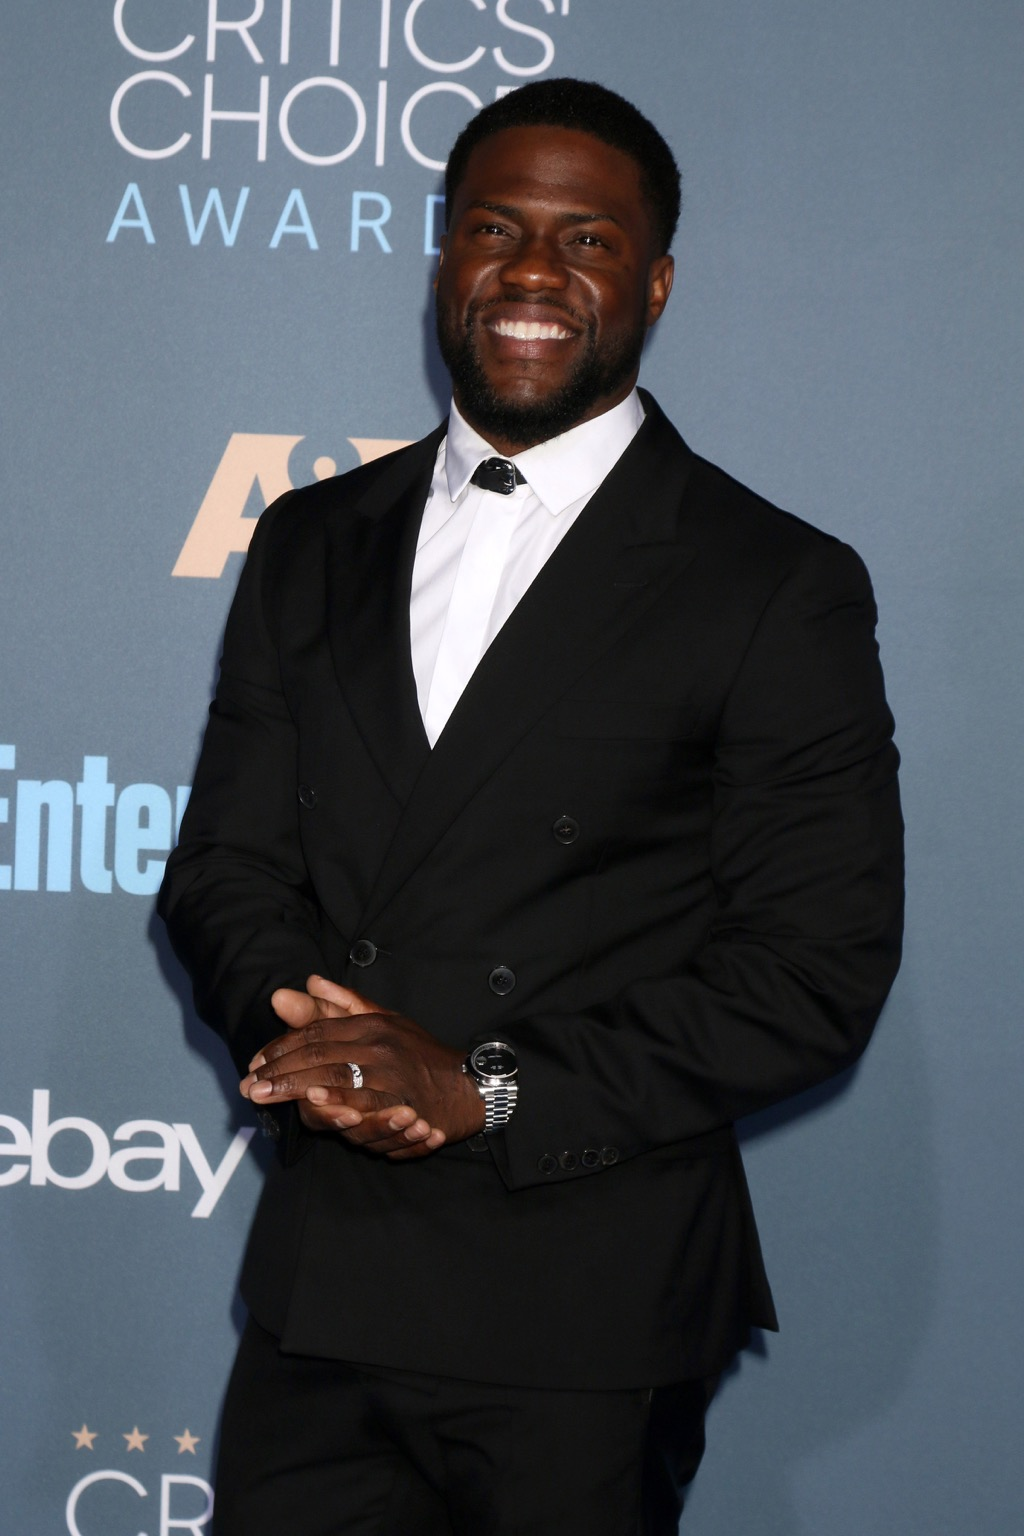 Kevin Hart Jokes From Comedy Legends